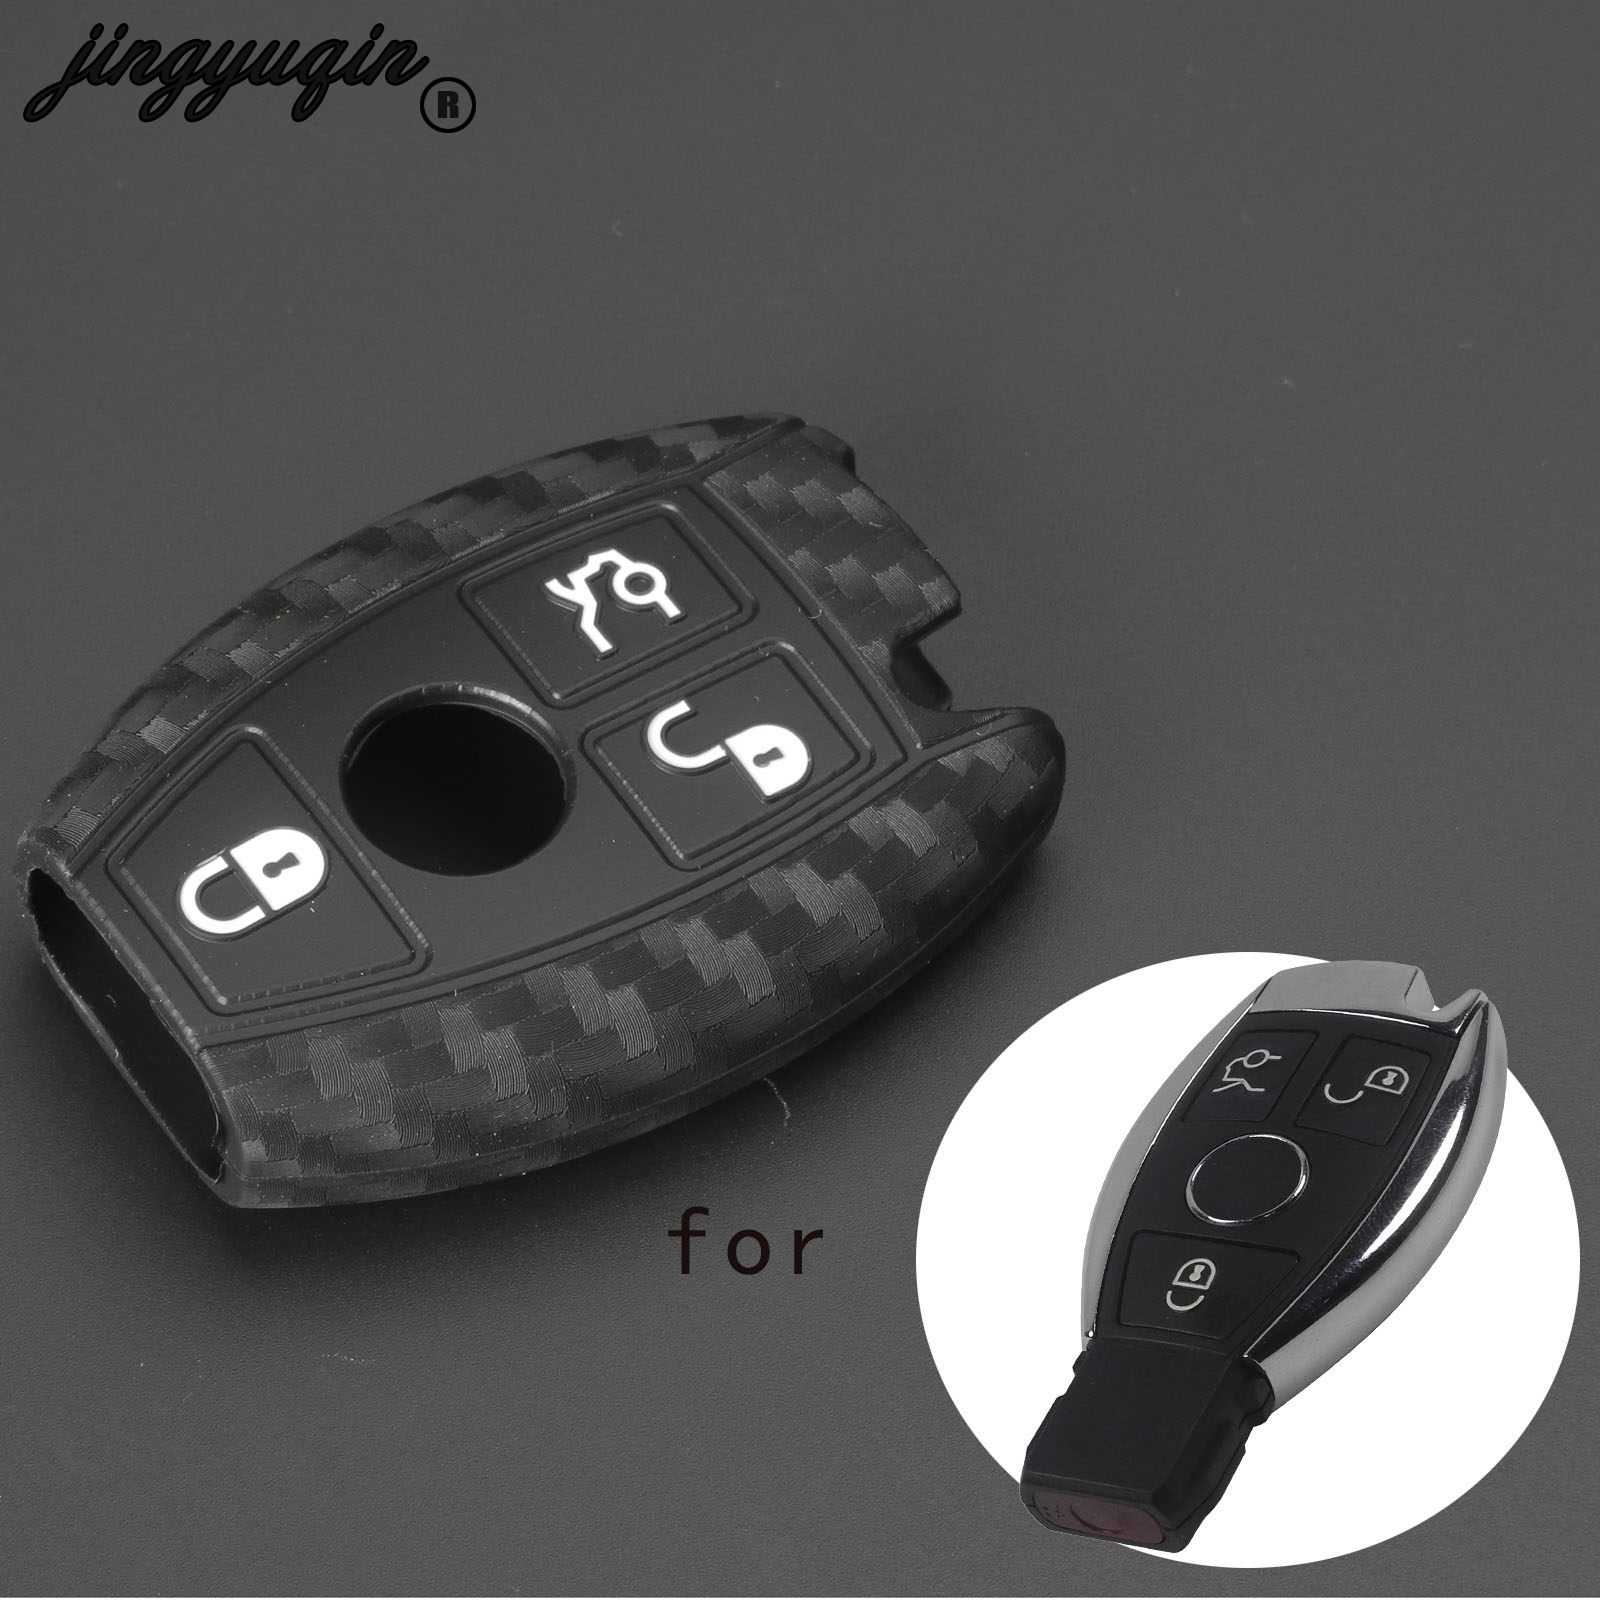 Jingyuqin Carbon Fiber Silicone Car Key Case Fob Cover For Mercedes Benz CLS CLA GL R SLK AMG A B C S Class 3 Buttons Protected